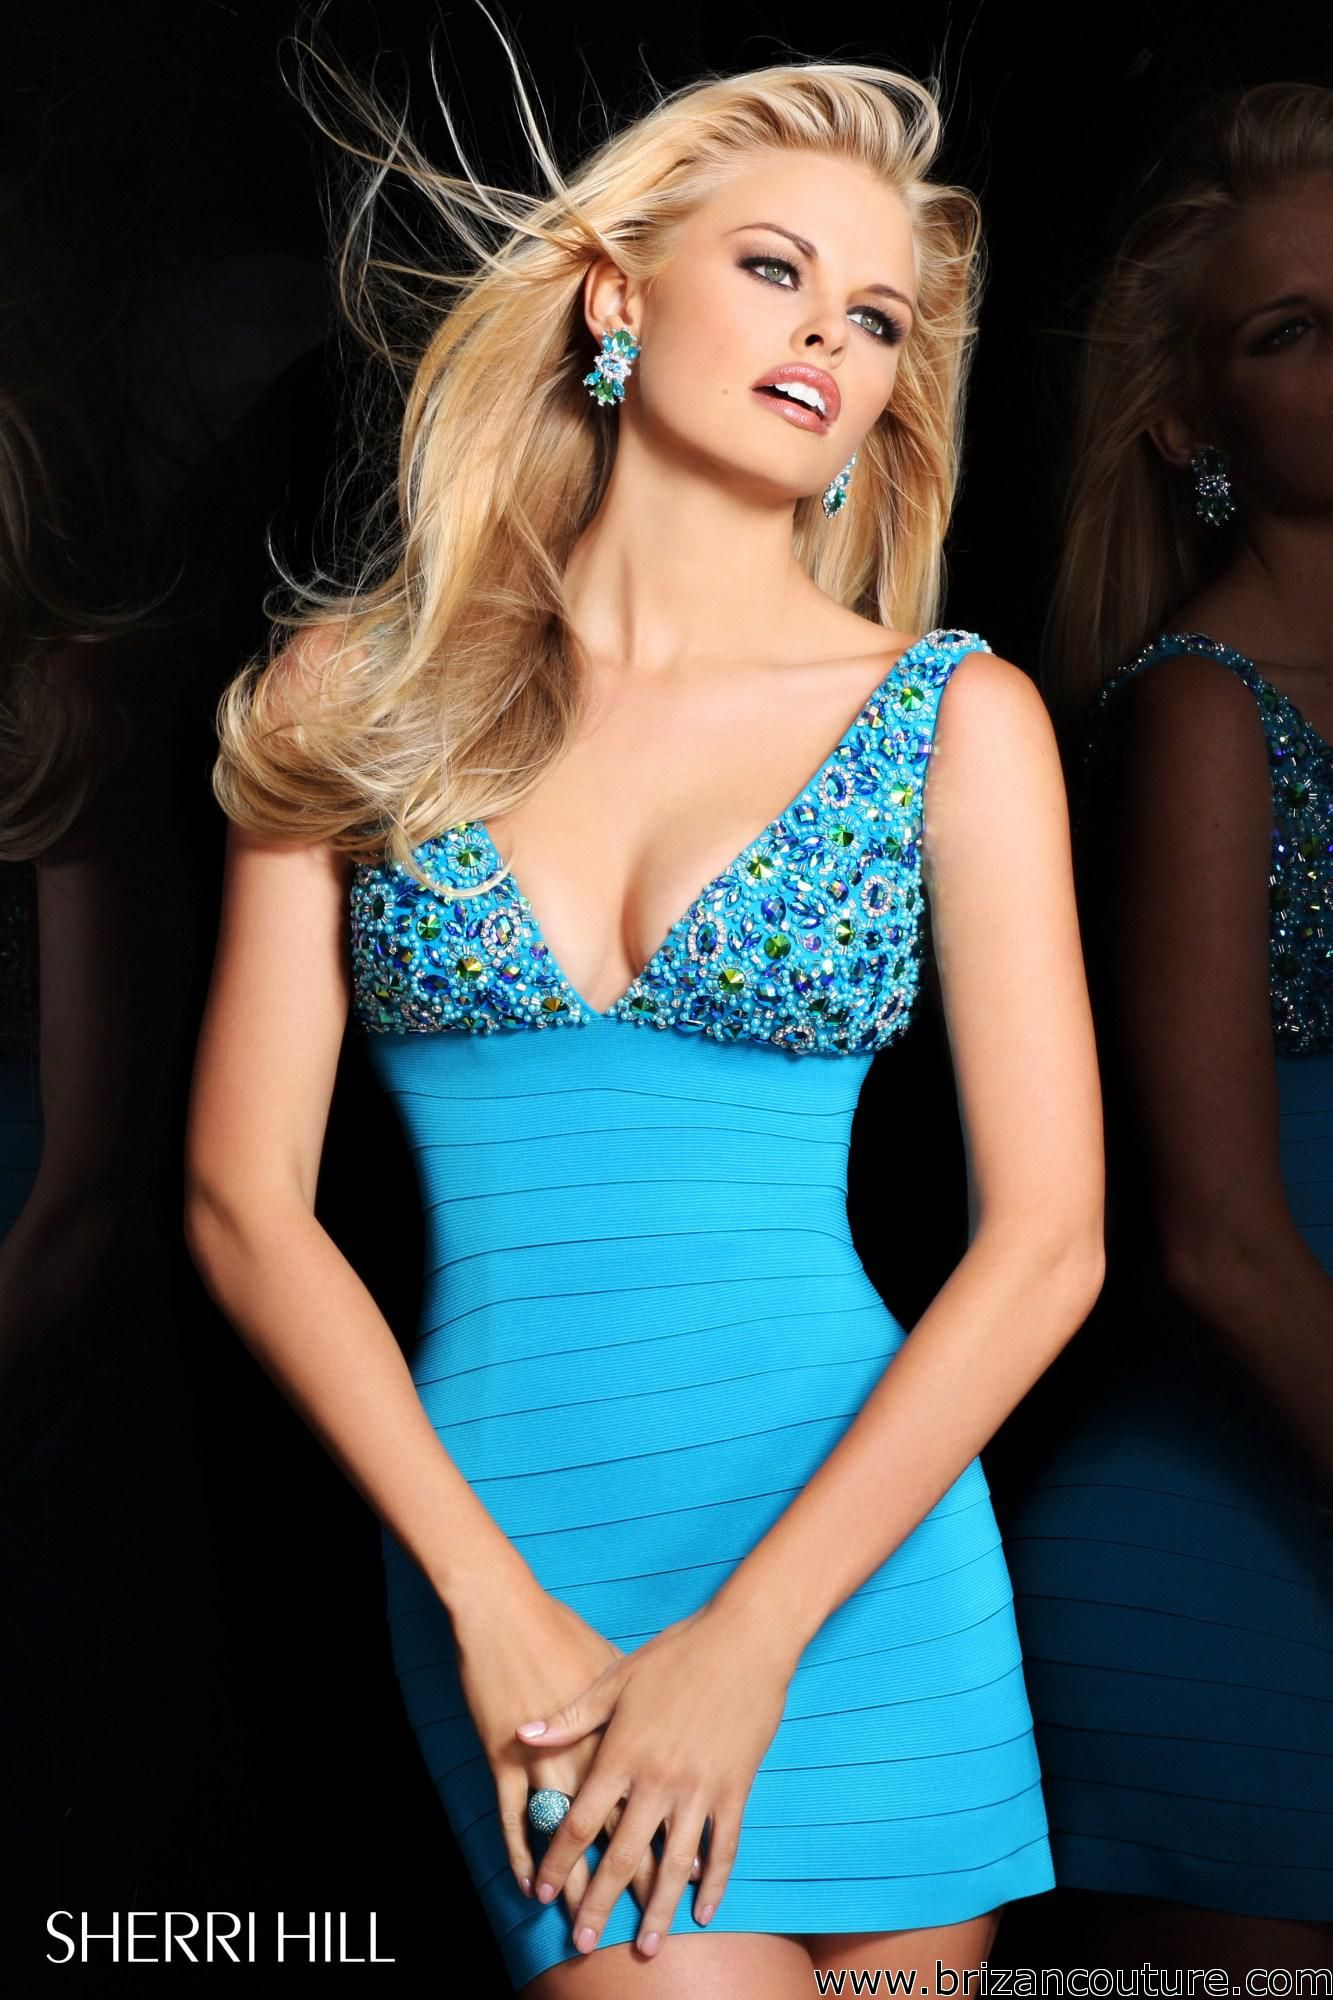 Sherri hill a formal affair or shop with us at dressshop